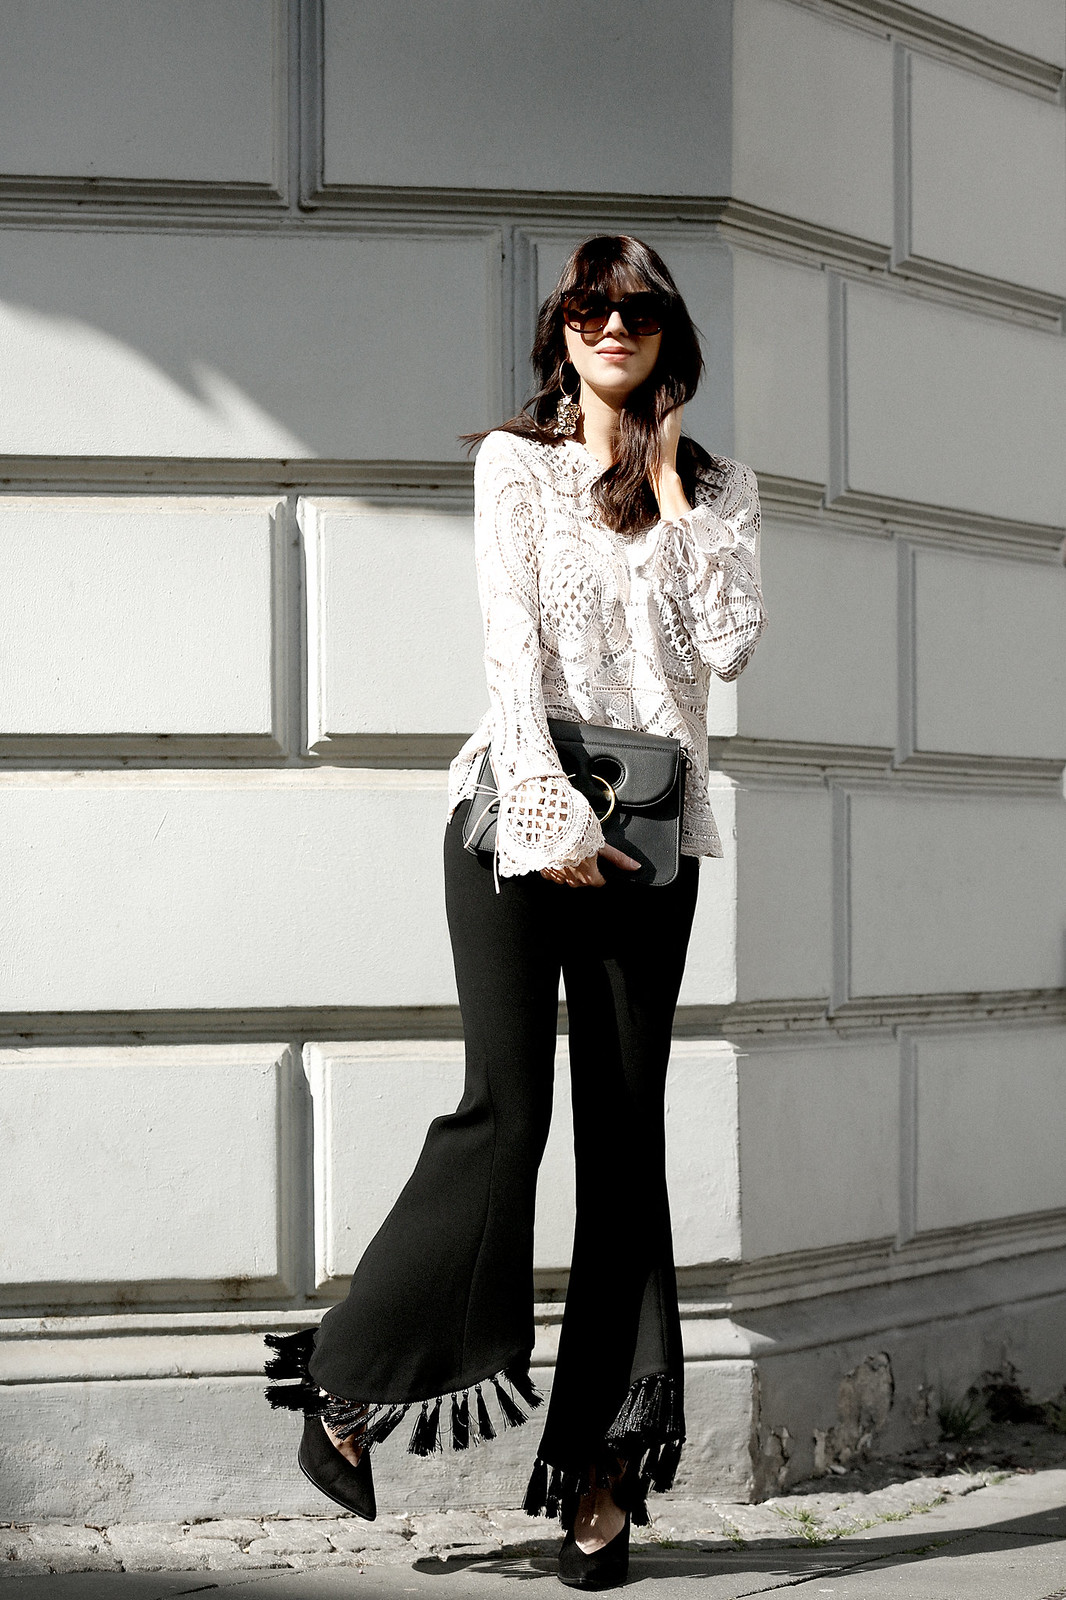 ootd flare pants black white minimal and other stories pumps j.w. anderson pierce bag céline audrey sunglasses zara style outfit fashionblogger vila lace blouse styleblogger modeblogger cats & dogs ricarda schernus düsseldorf blogger 6